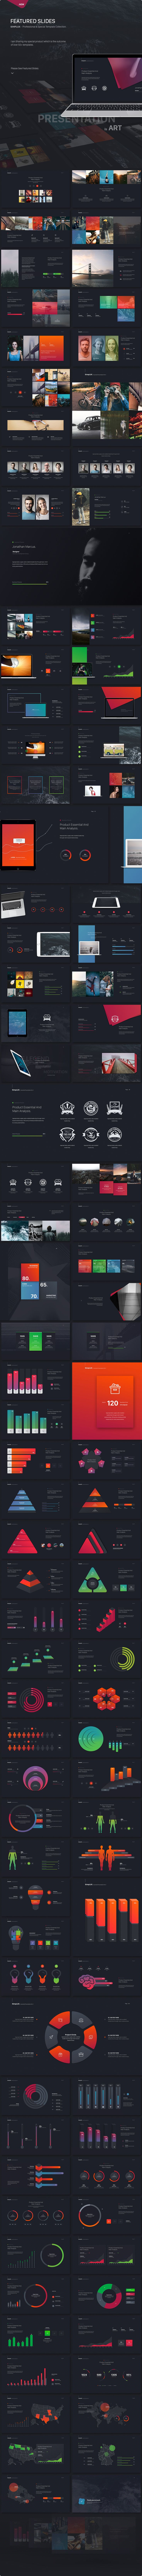 Buy Simplux Powerpoint Creative Template by SimpleSmart on GraphicRiver.  SimpLUX Simply Creative Template Get a modern Powerpoint Presentation that is beautifully designed and functional. T... Download here: https://graphicriver.net/item/simplux-powerpoint-creative-template/19054086?ref=alena994